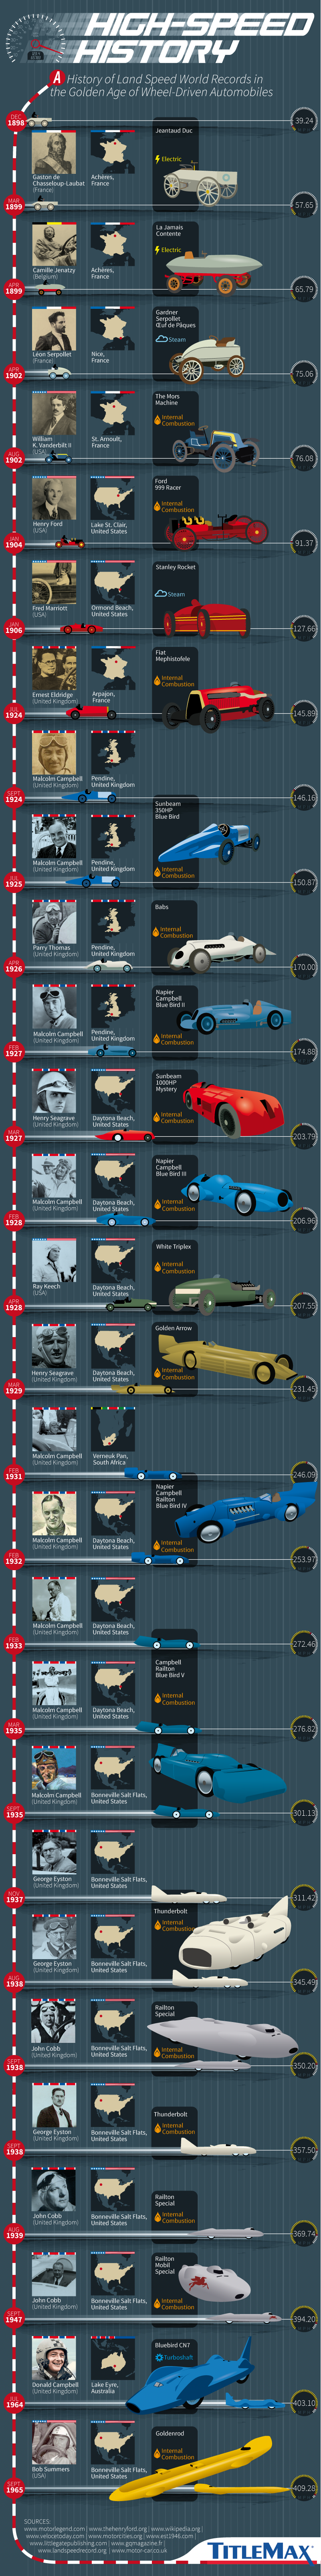 High-Speed History: A Timeline of Landspeed World Records